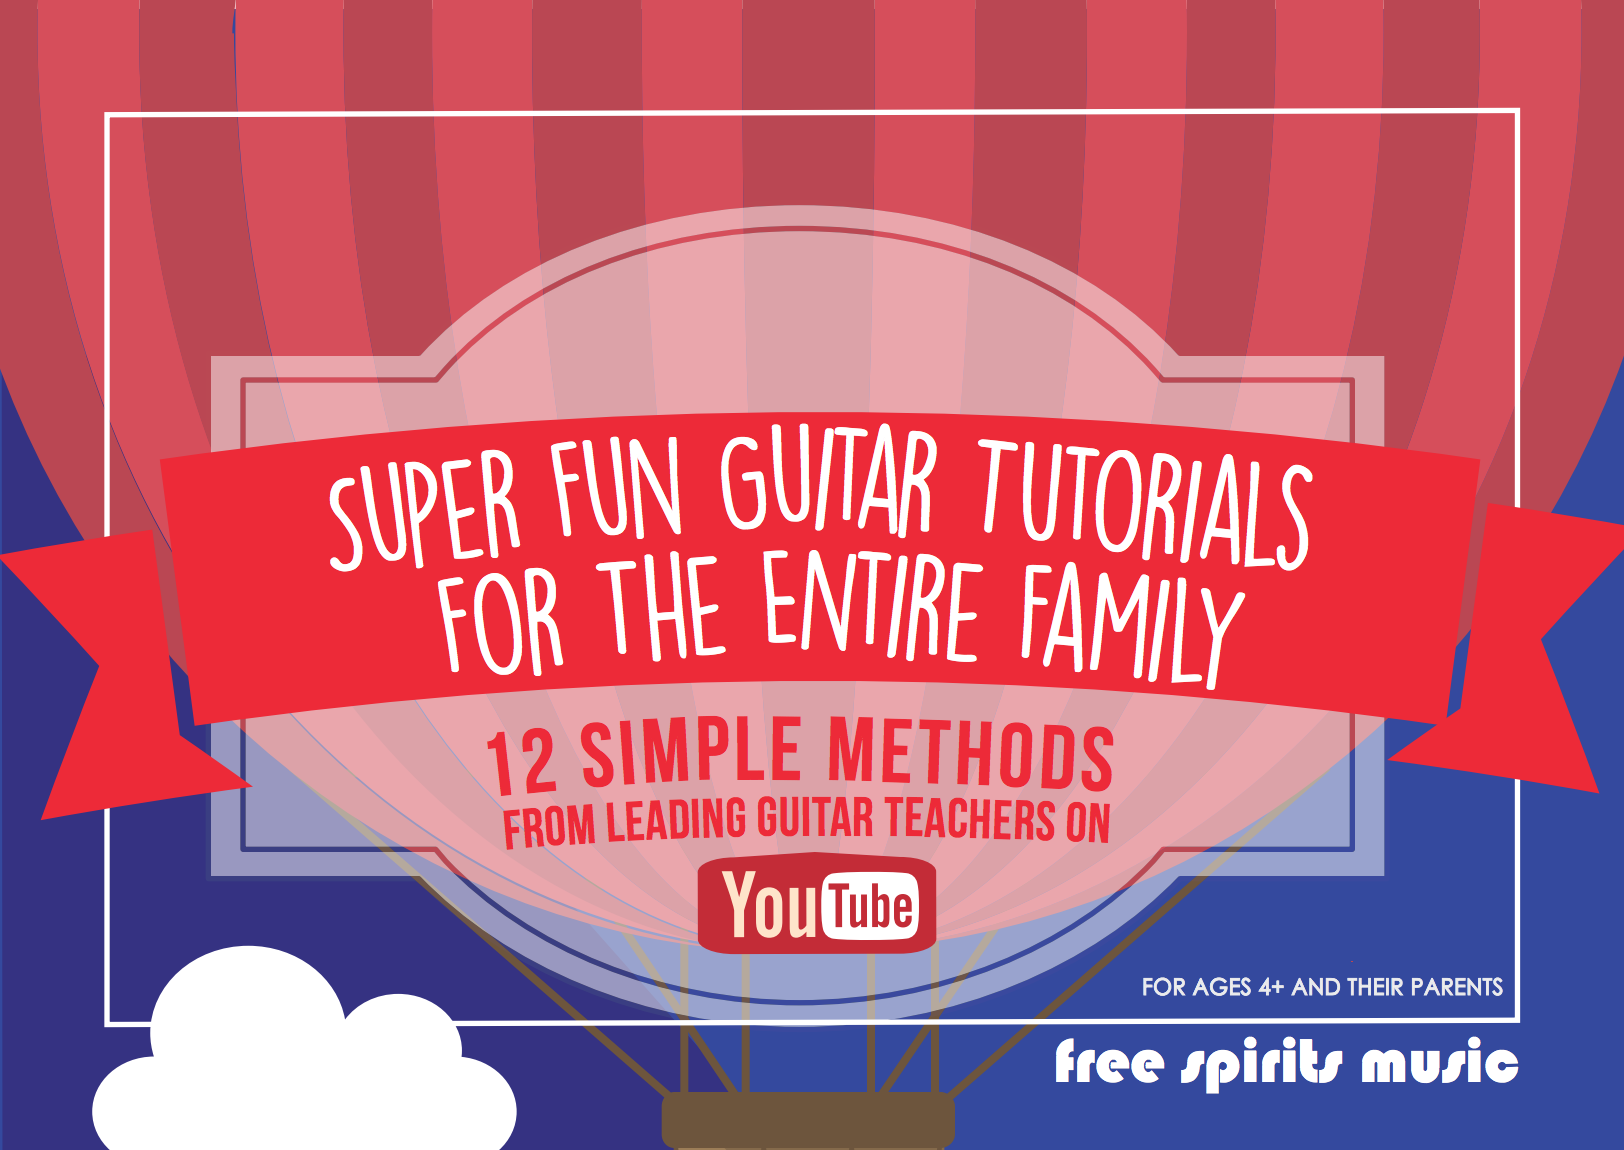 super fun guitar tutorials.jpg